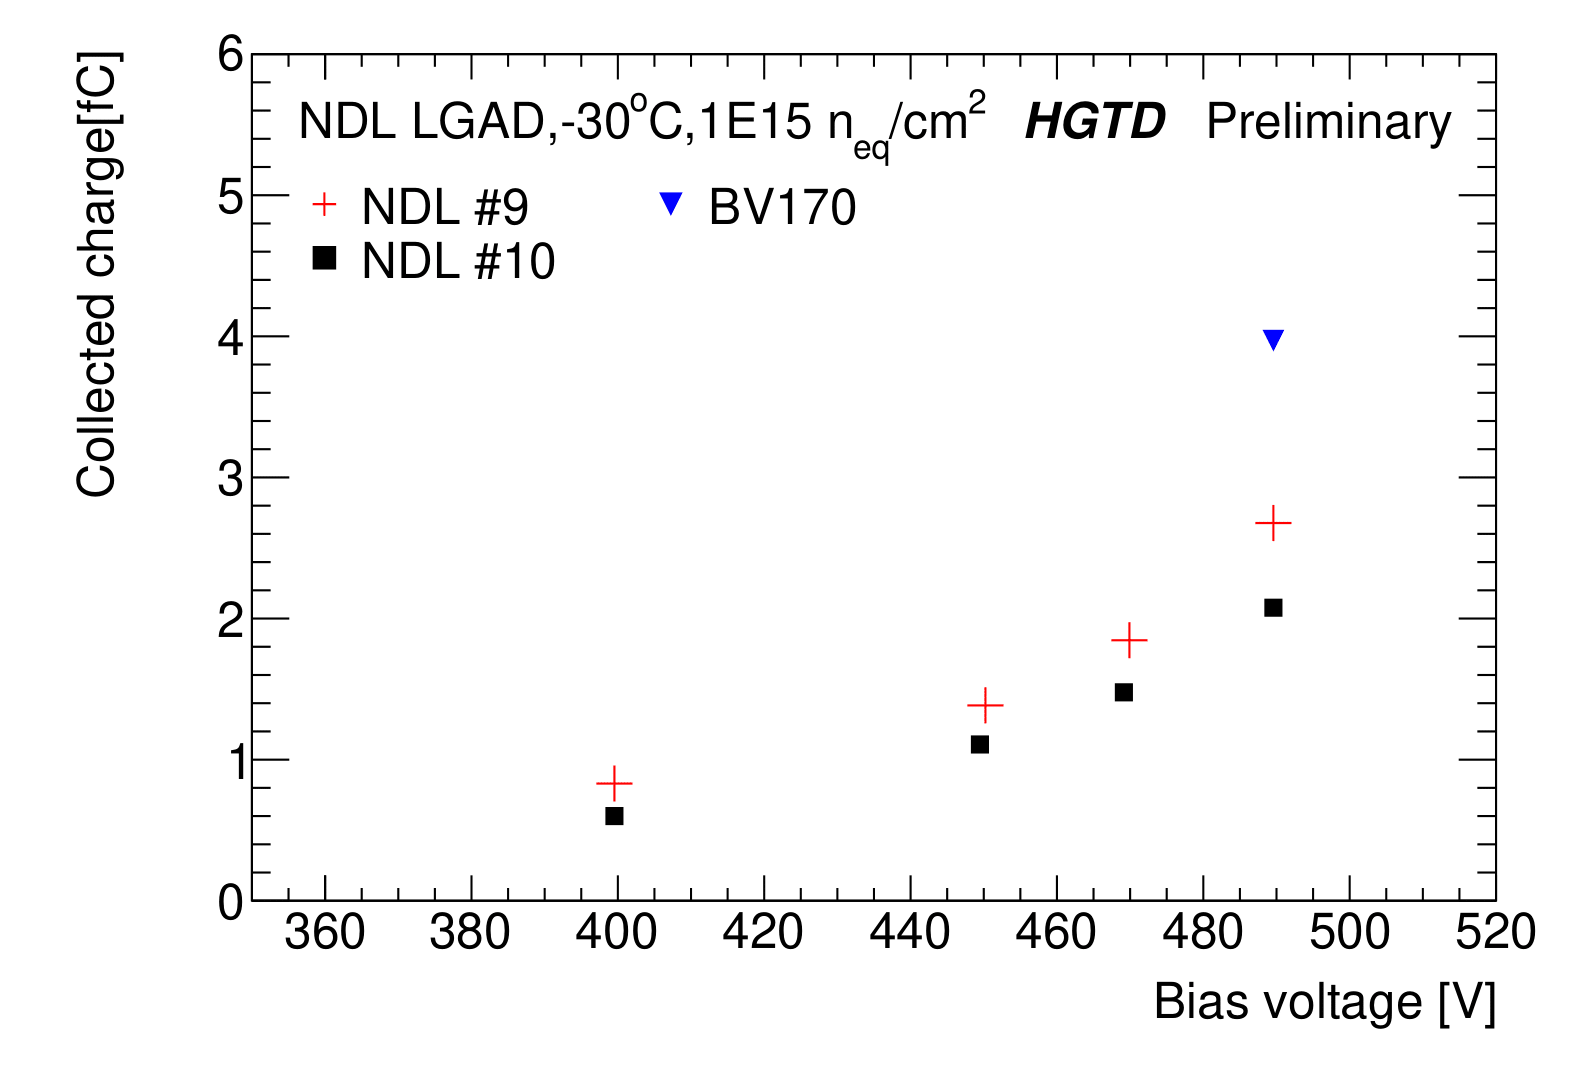 figure7b_1E15CollectedCharge3-1.png